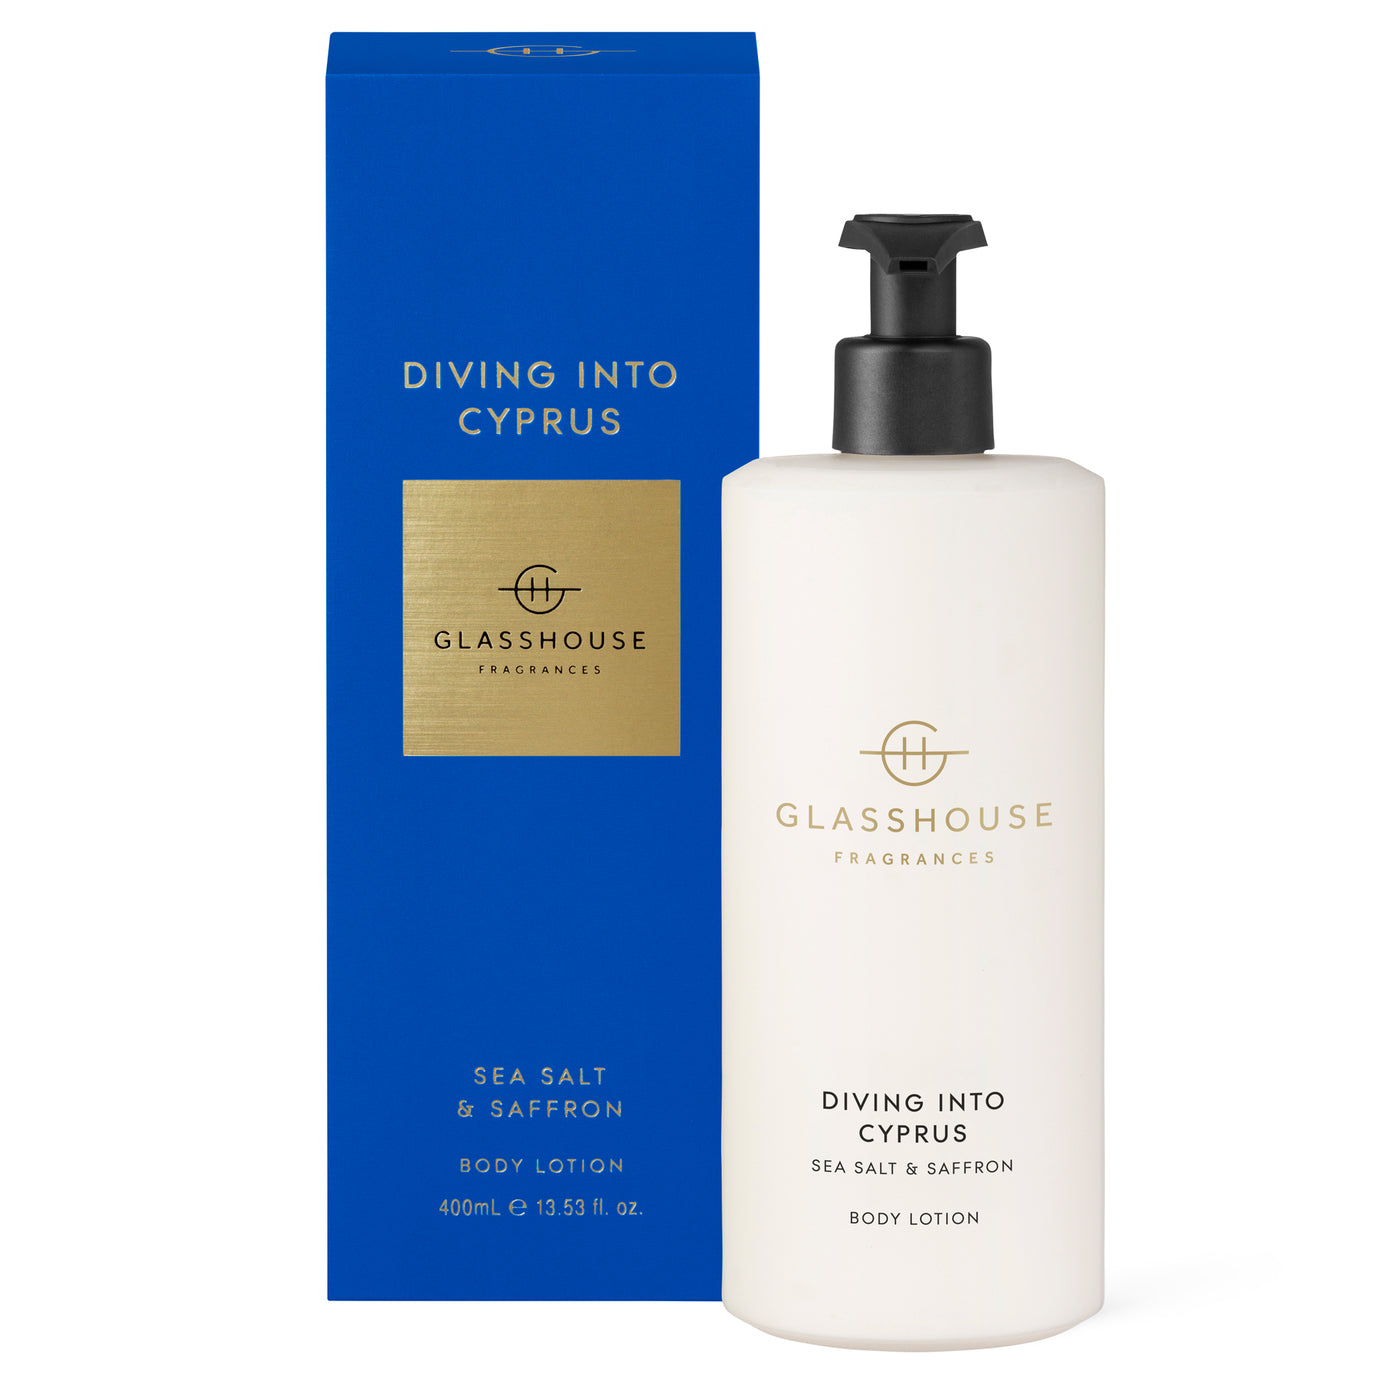 400ml DIVING INTO CYPRUS Body Lotion